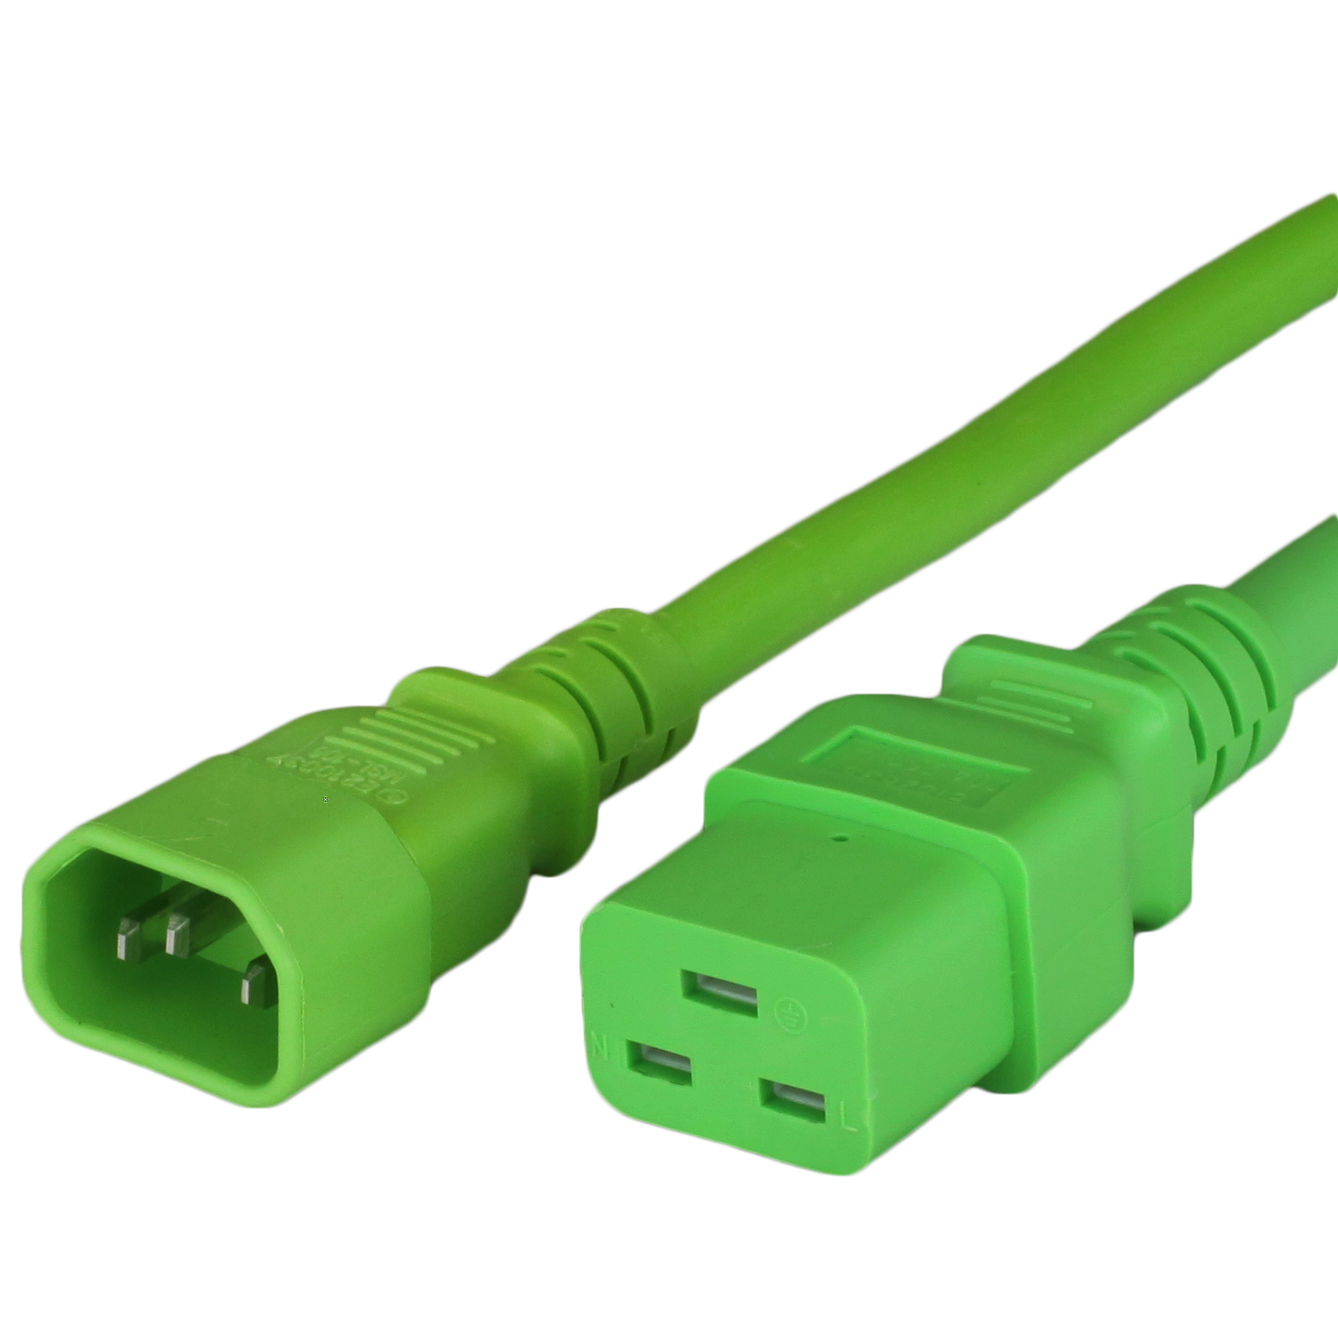 15A C14 C19 Power Cords - GREEN